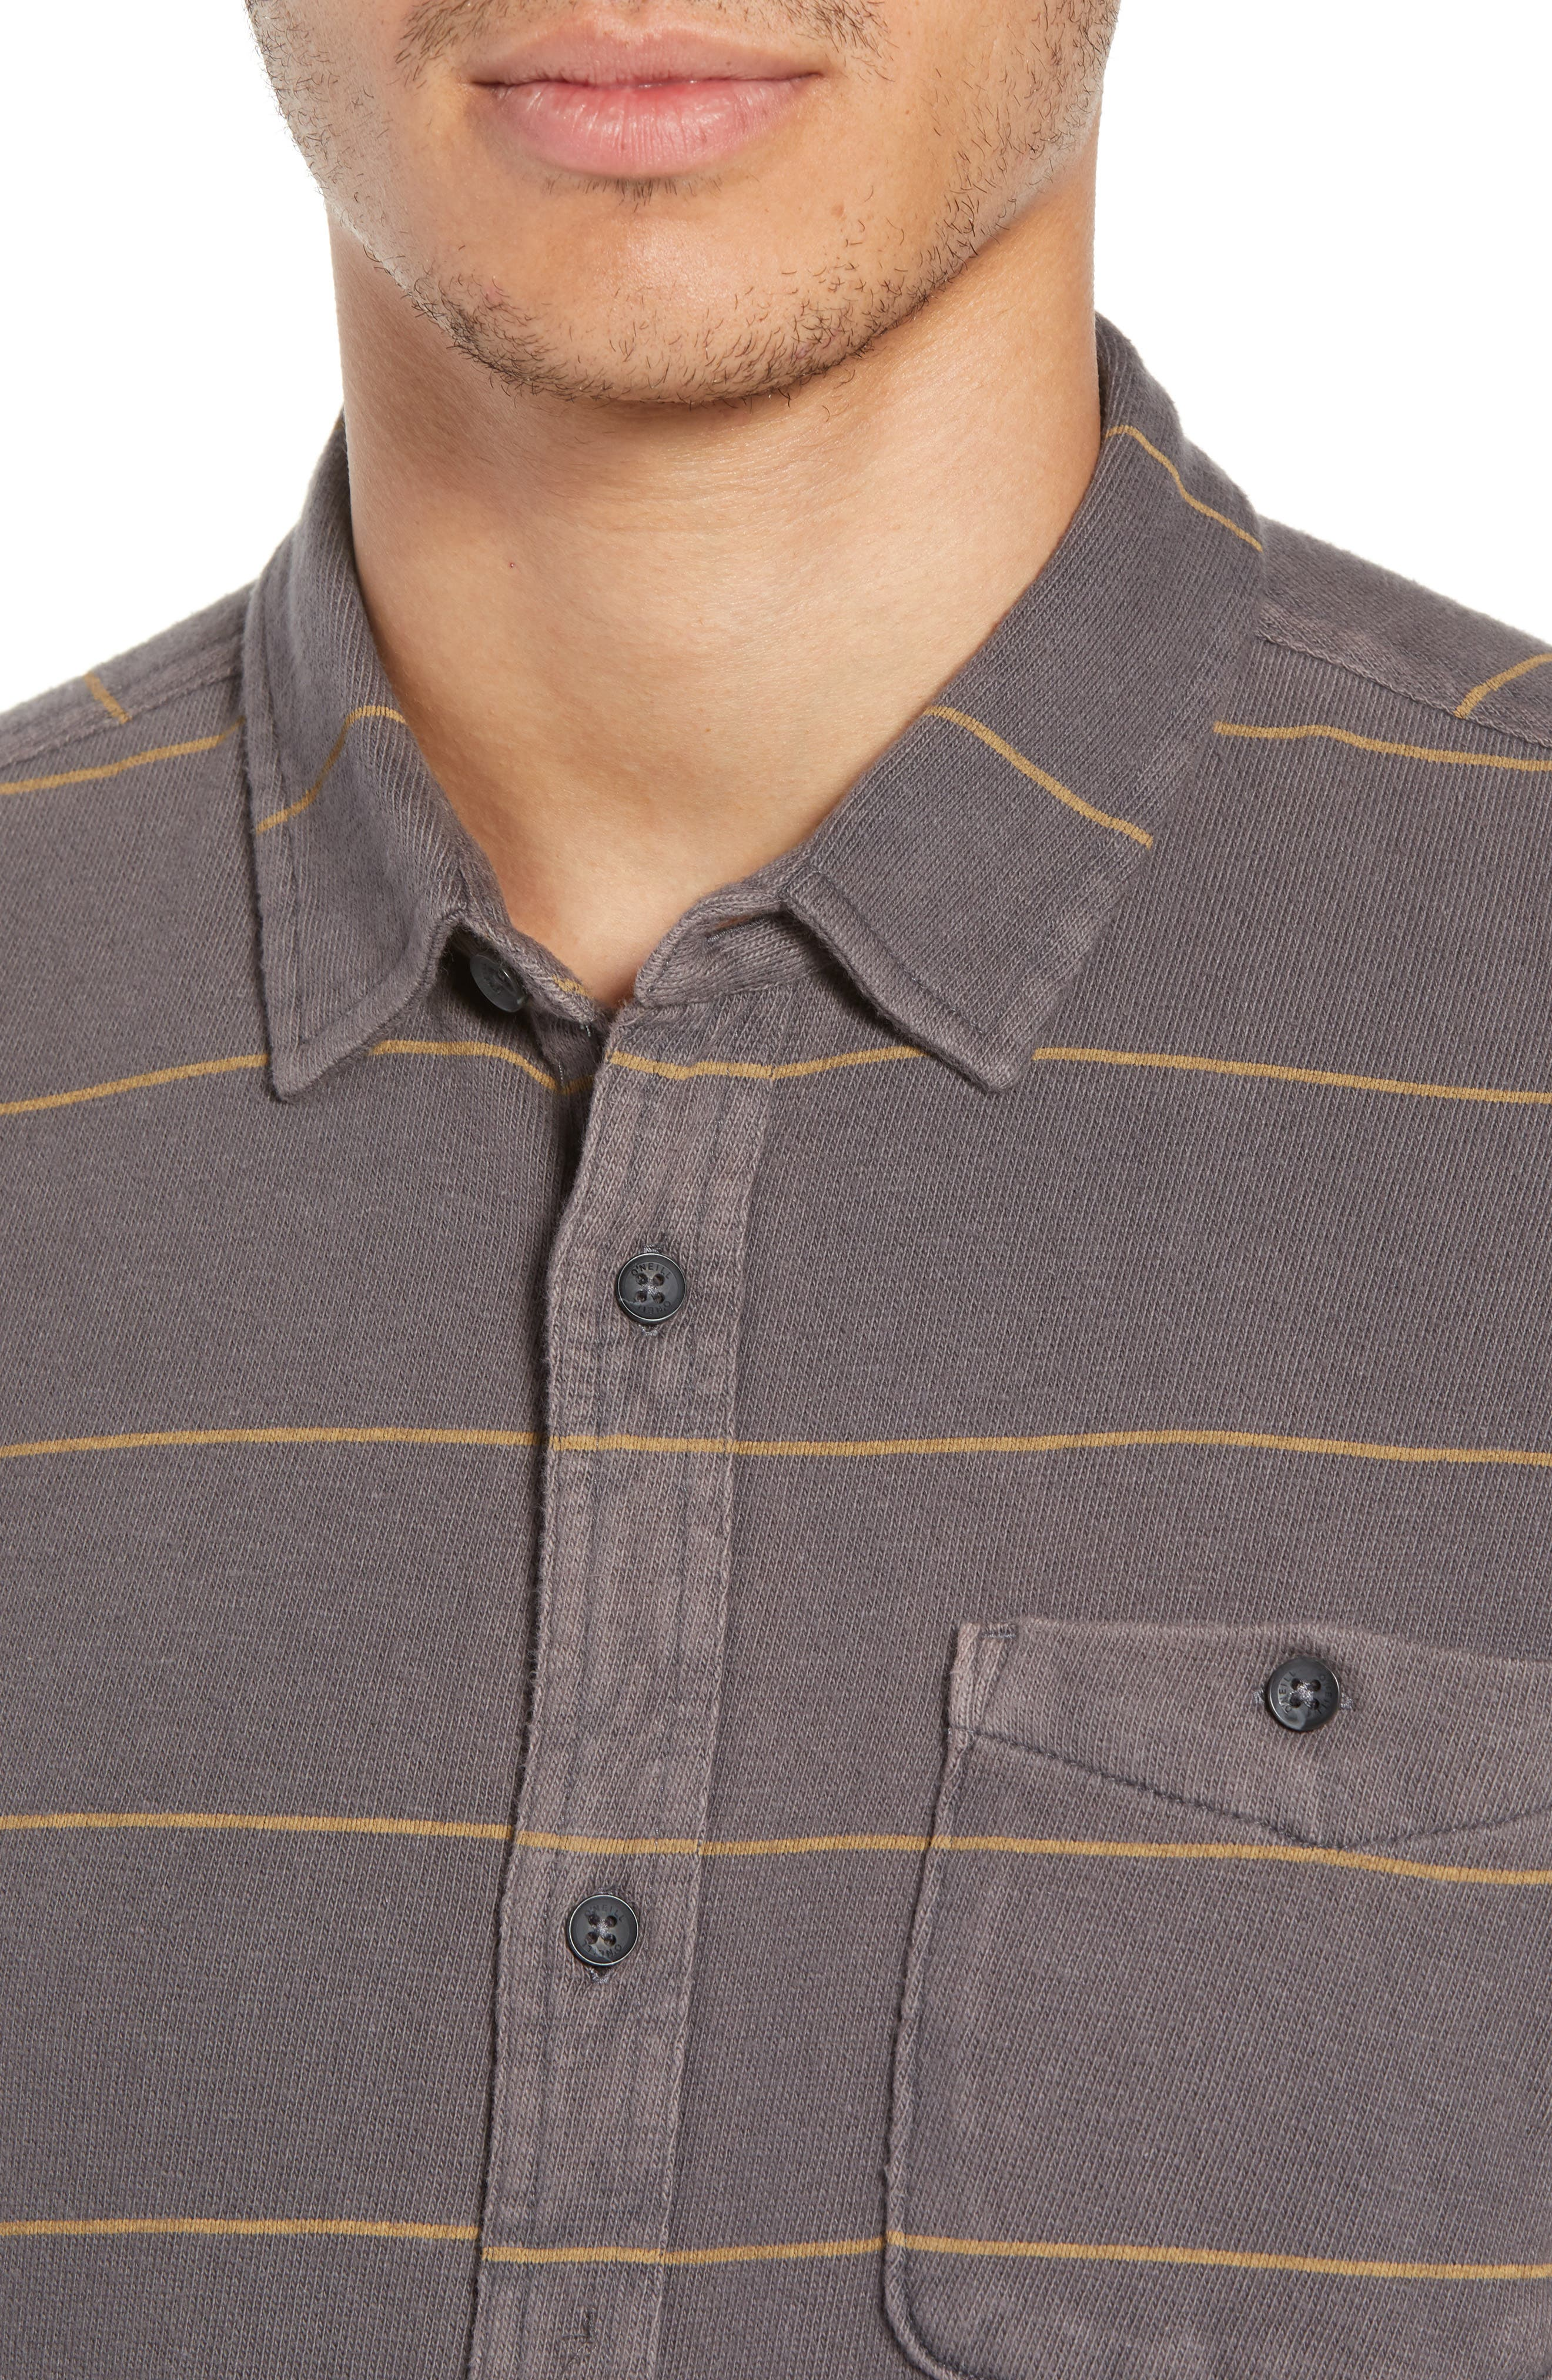 Cowell Knit Button-Up Shirt,                             Alternate thumbnail 2, color,                             020